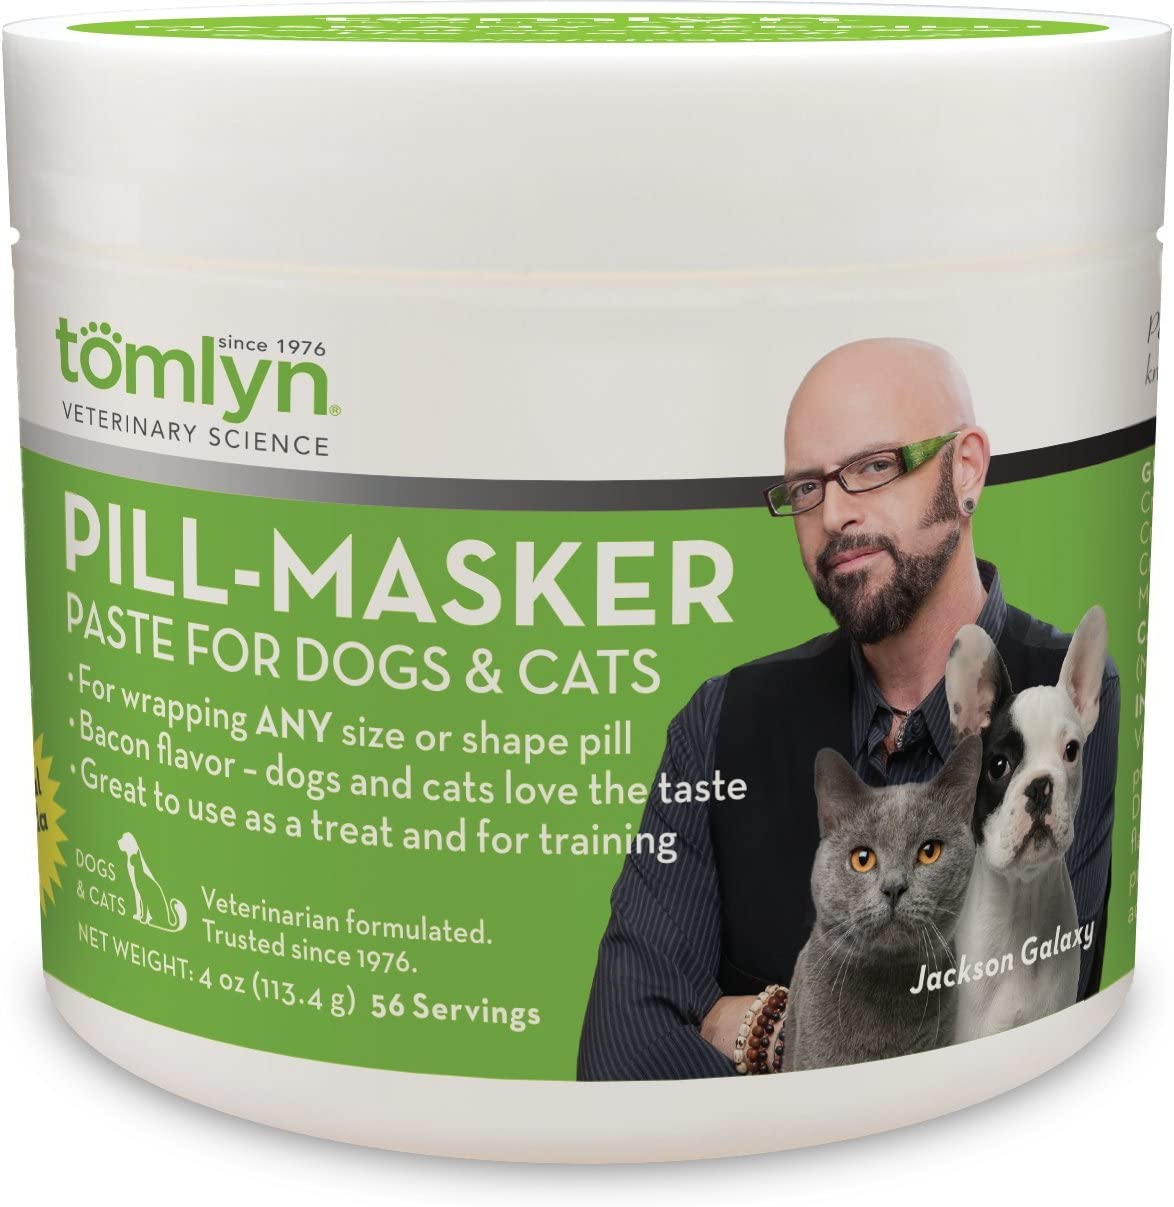 TOMLYN Pill-Masker (Original) for Dogs and Cats, 4oz